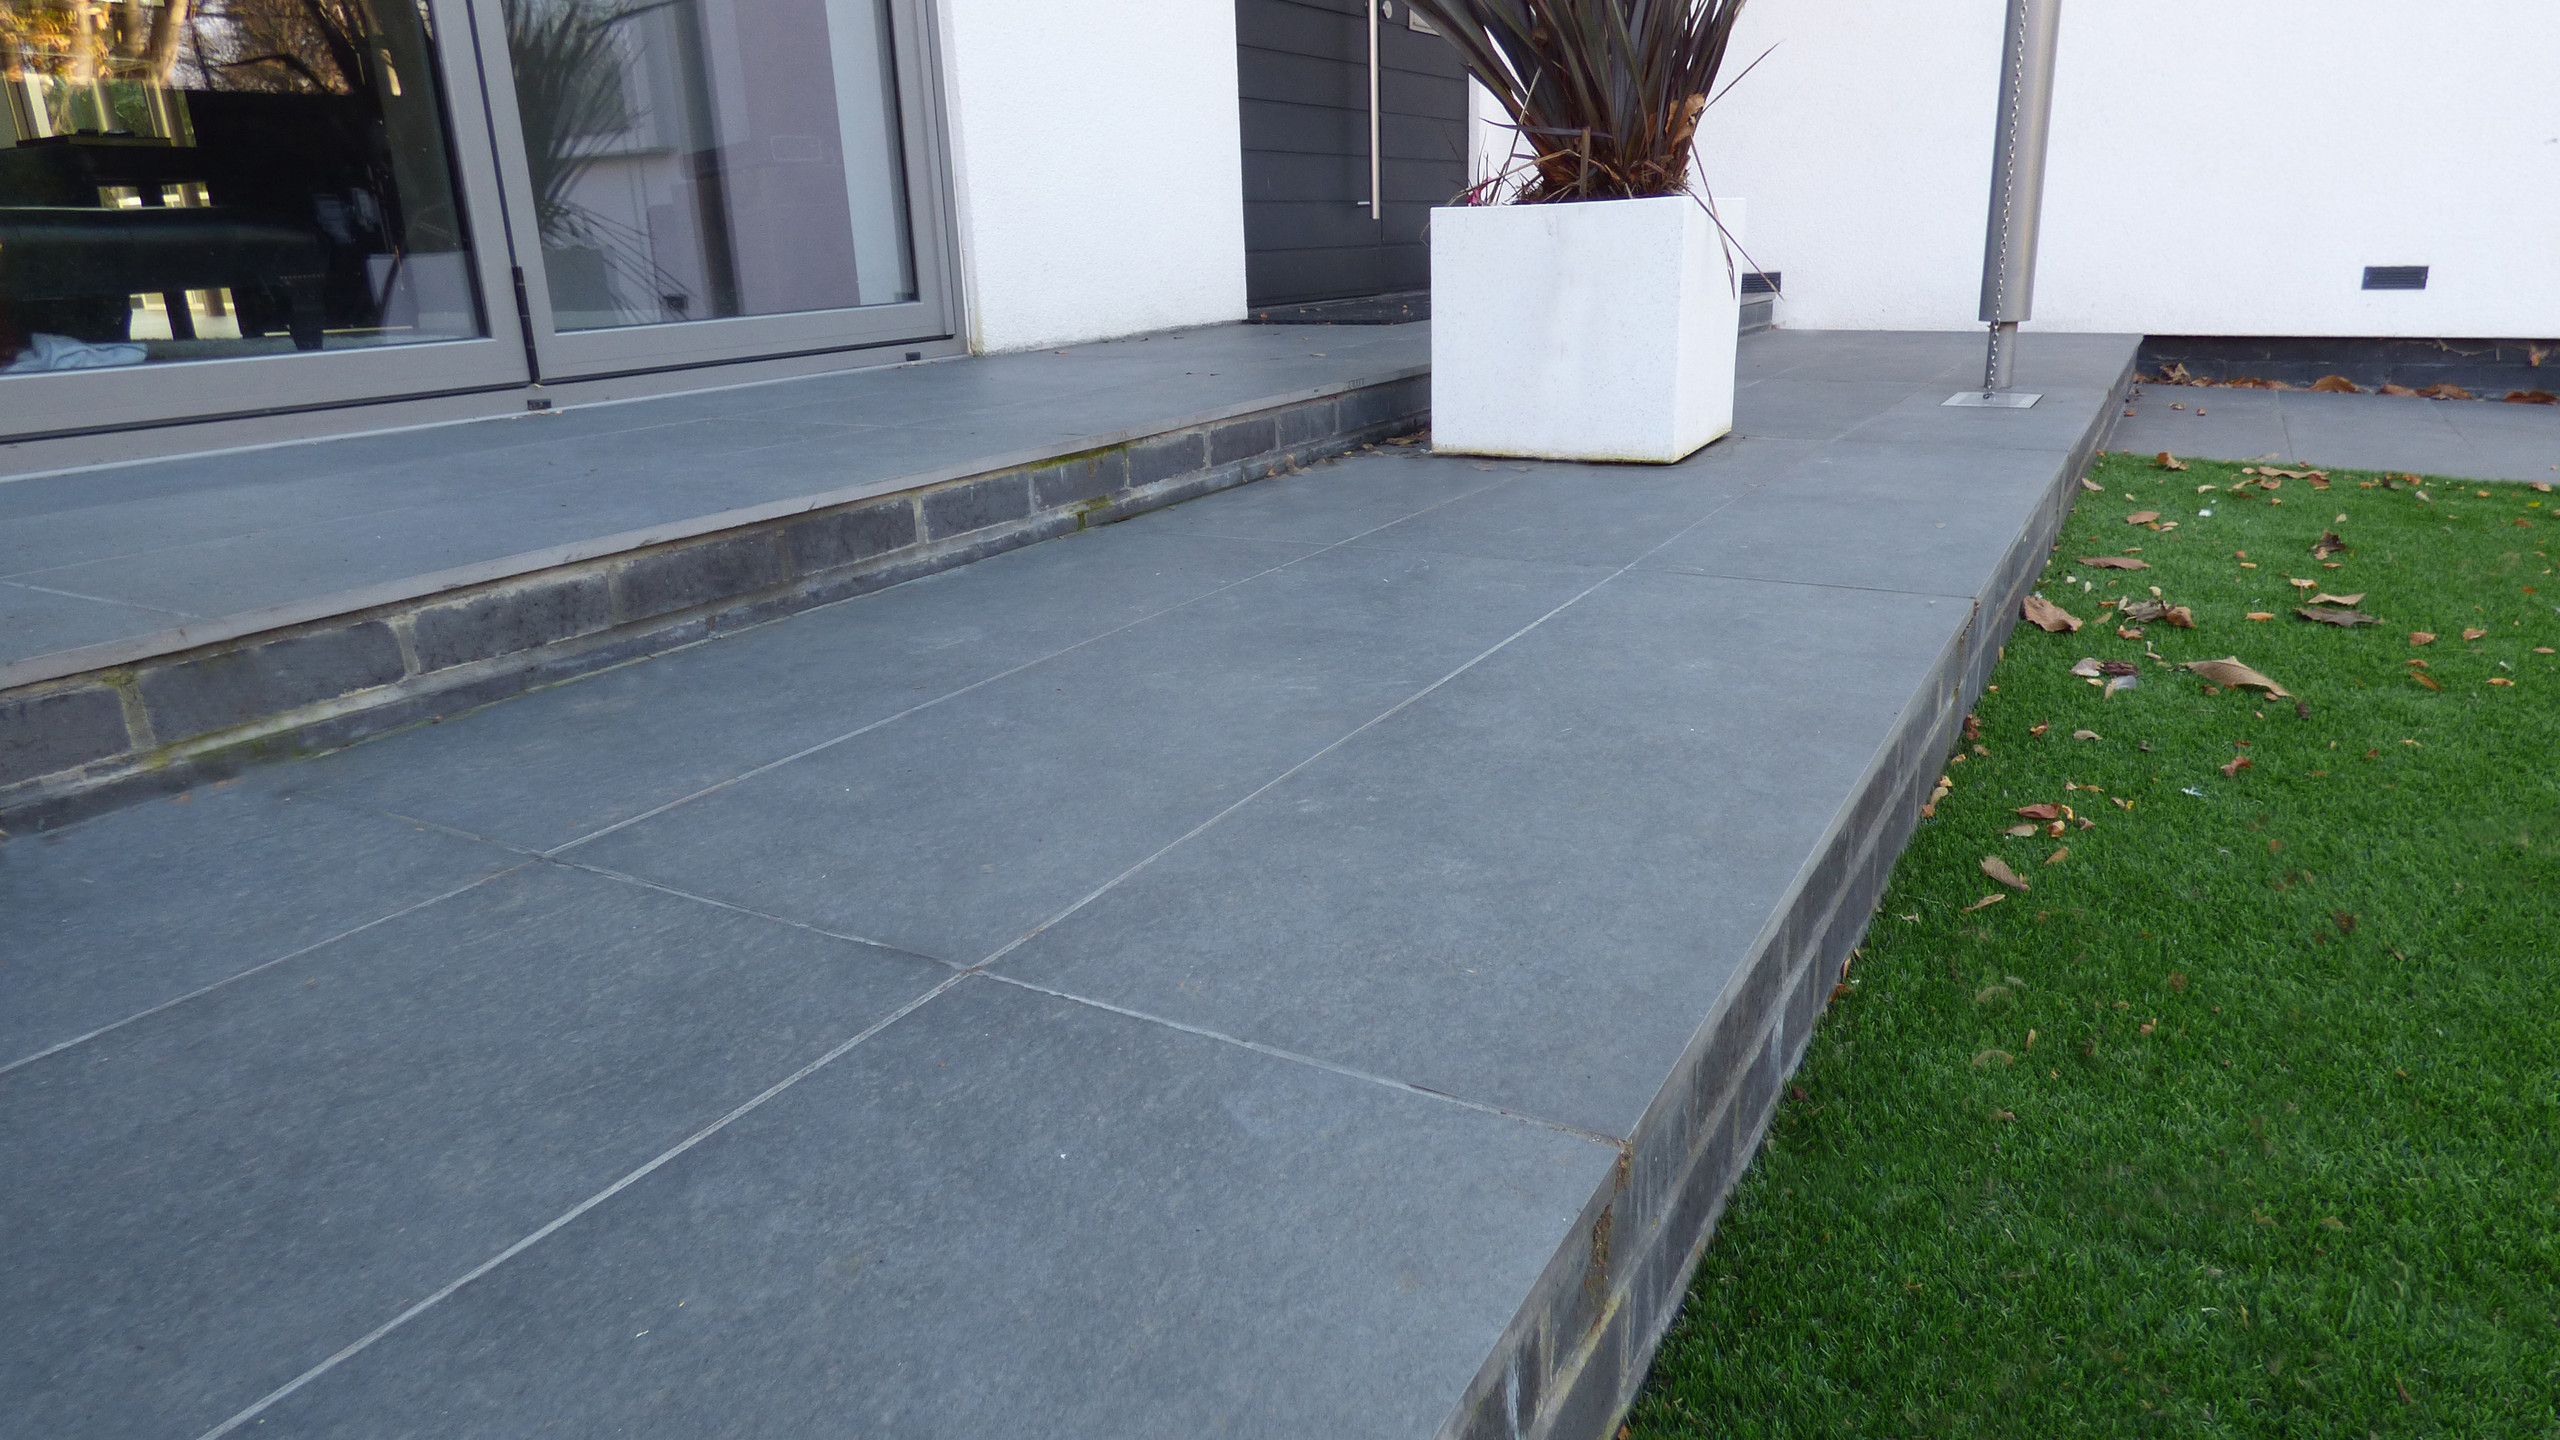 Installed Brett Porcelain paving in Night Sky, at the front and rear of this property in Tunbridge Wells